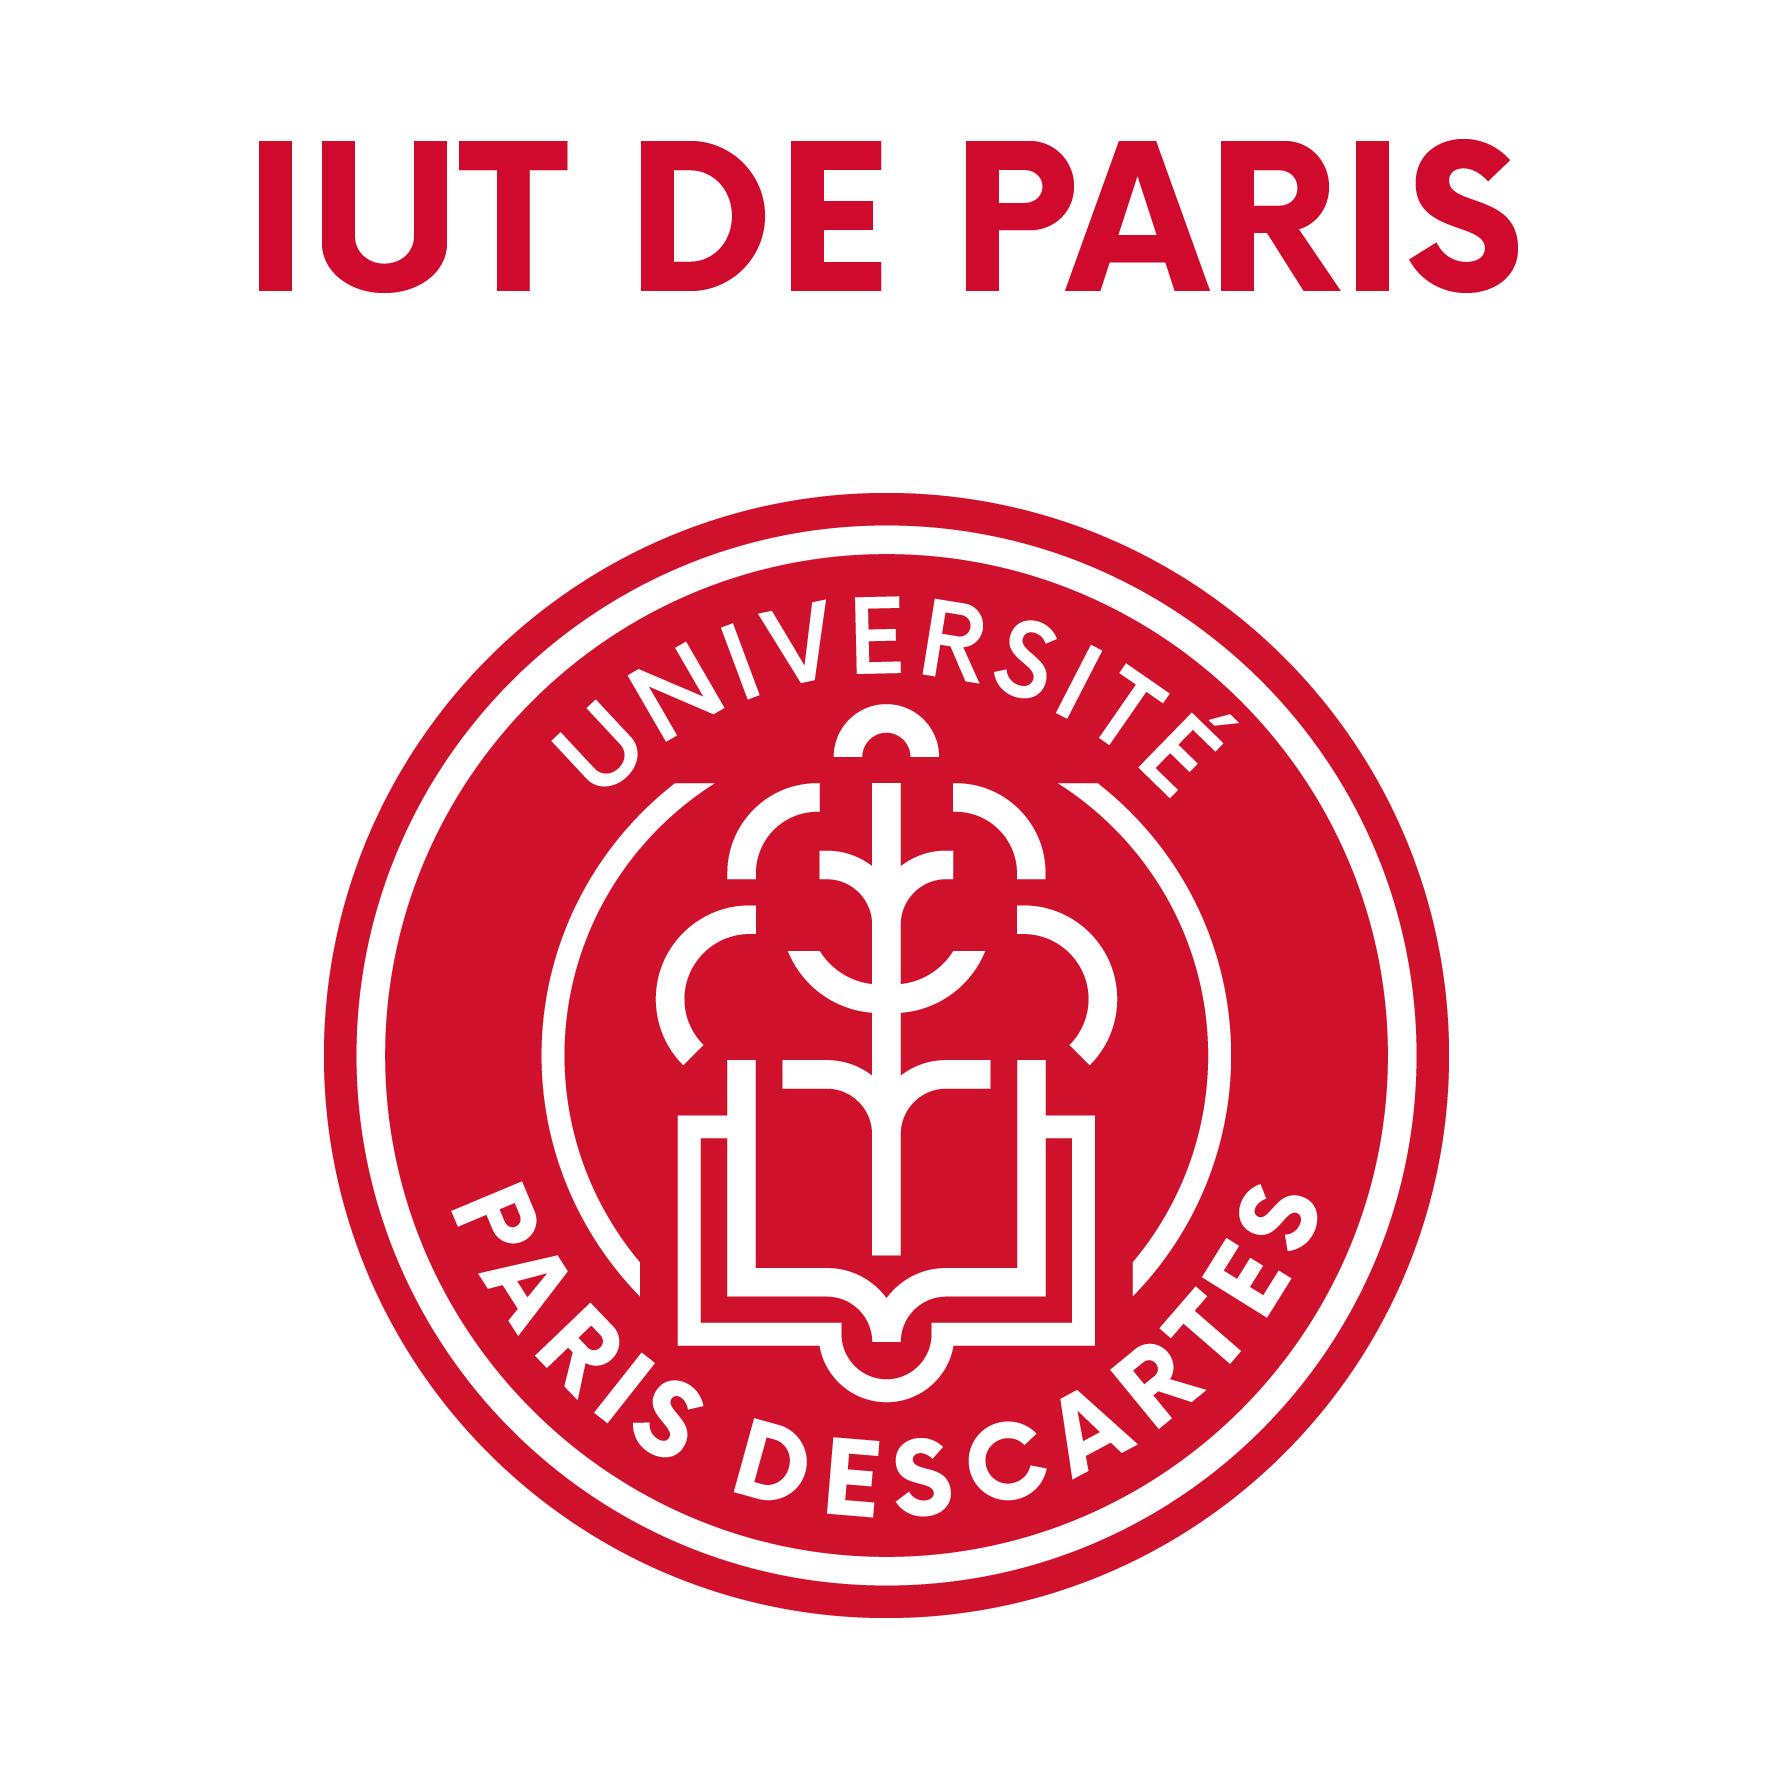 Logo de IUT Paris Descartes